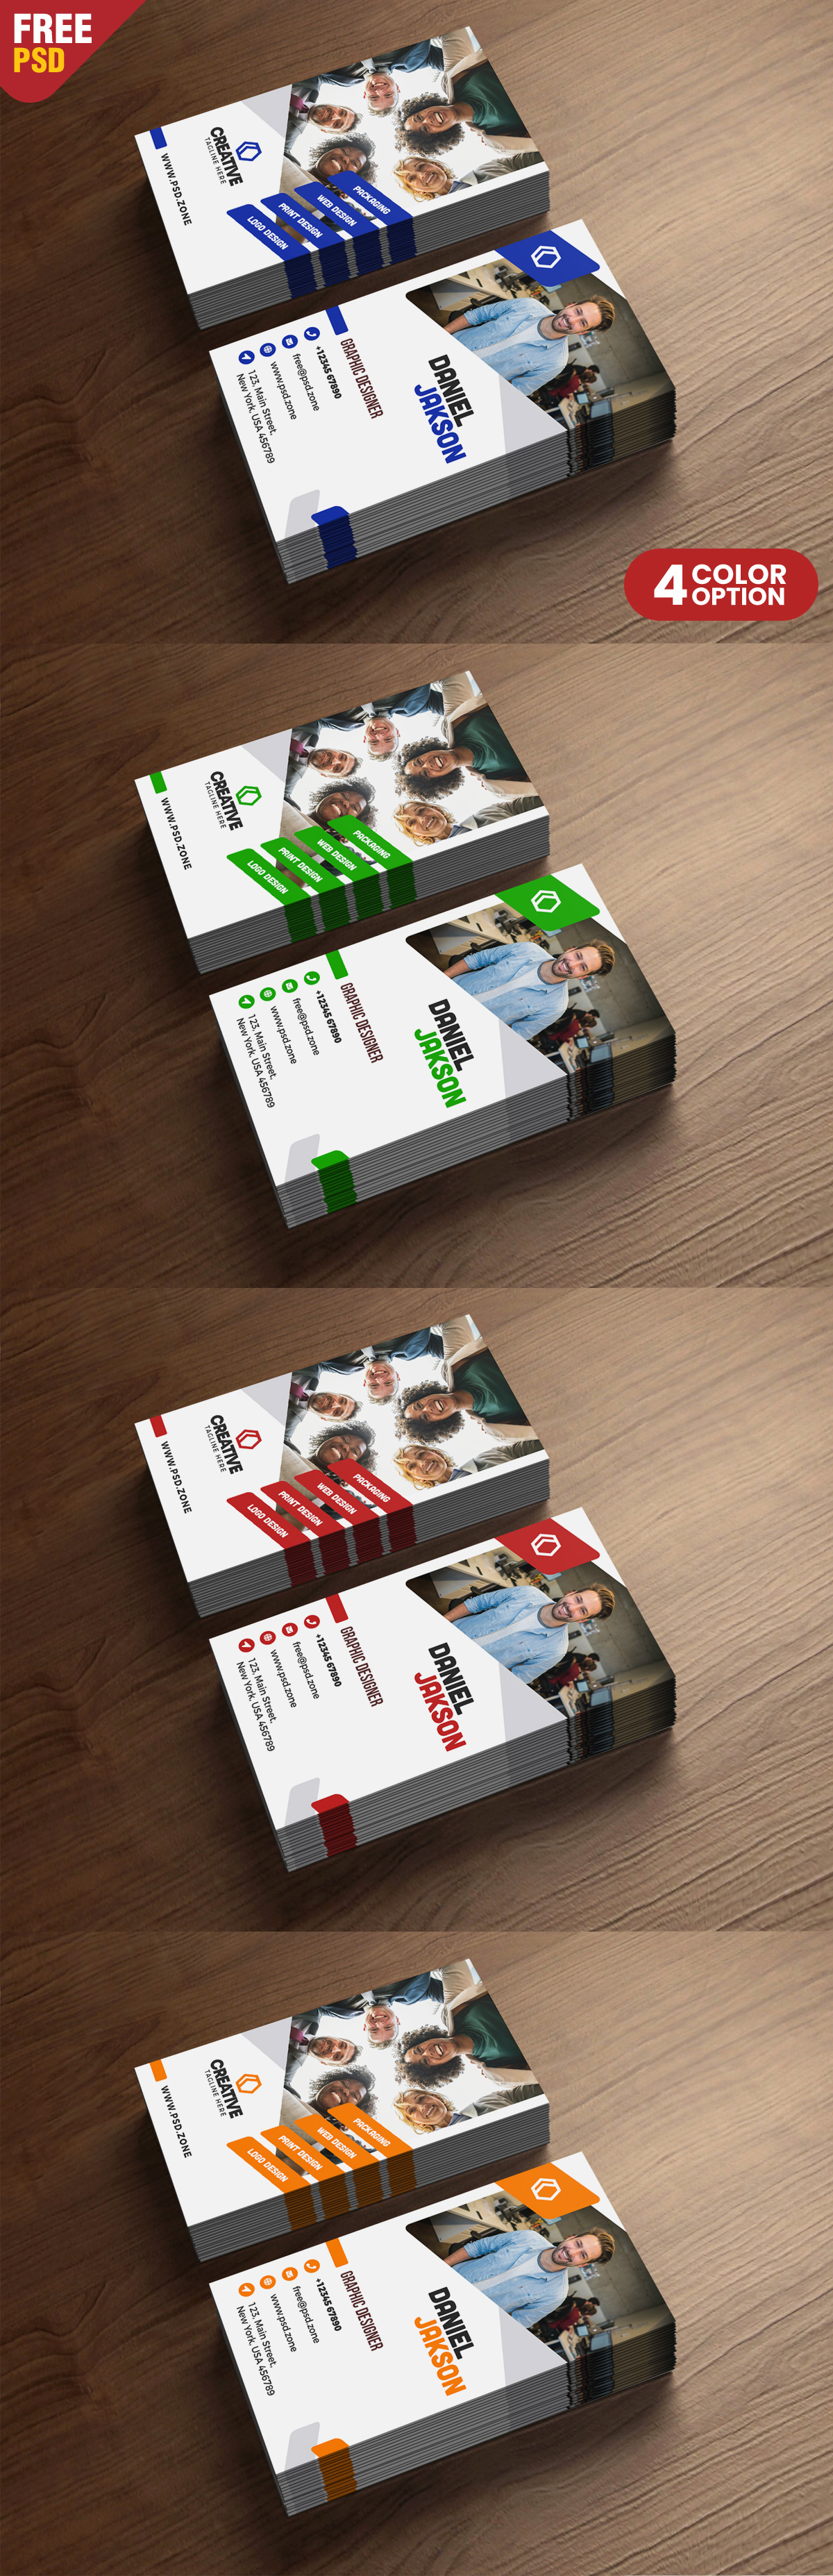 Vertical Business Card Design Free PSD